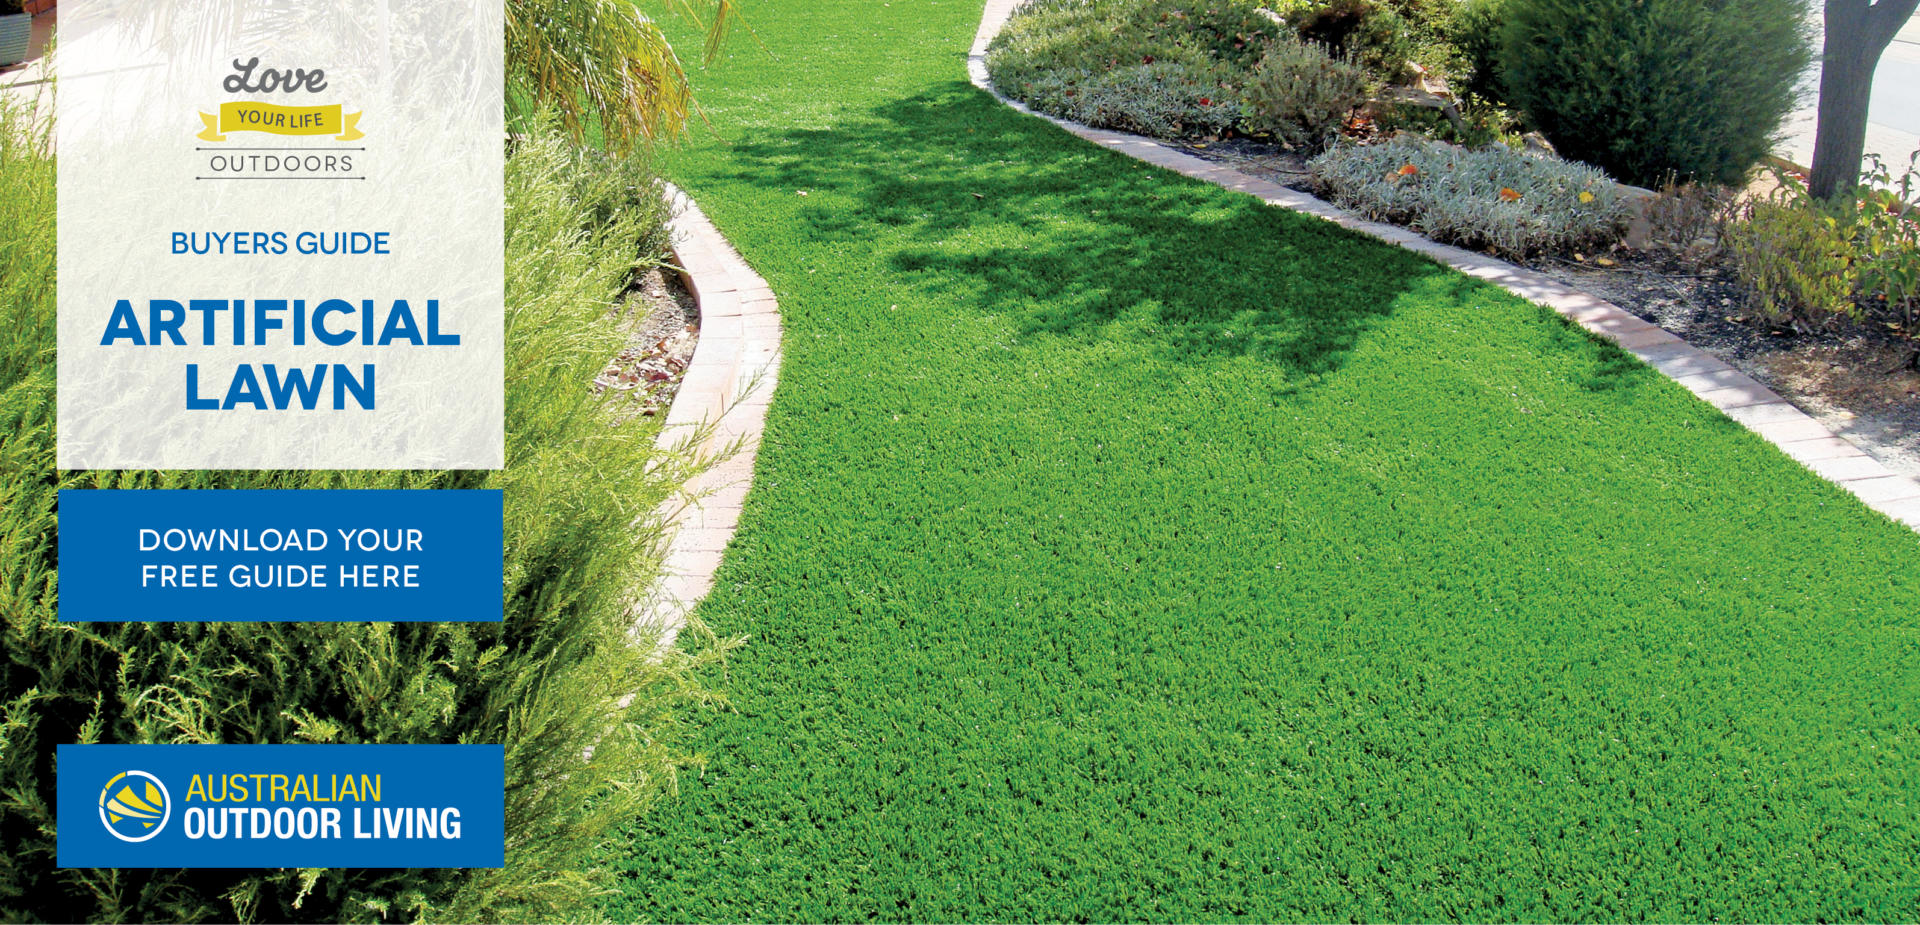 Buyers Guide - Artificial Lawn